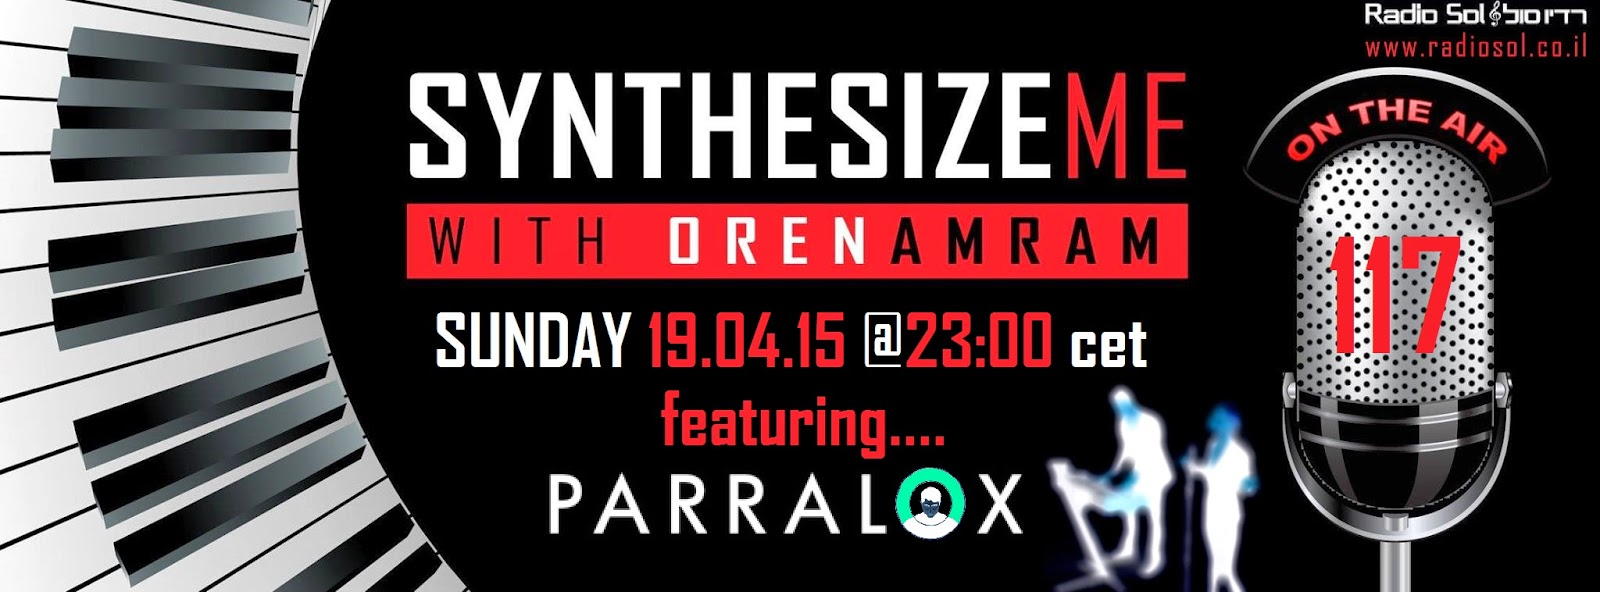 Synthesize Me (Isreal) 3 hour Radio show dedicated to Parralox